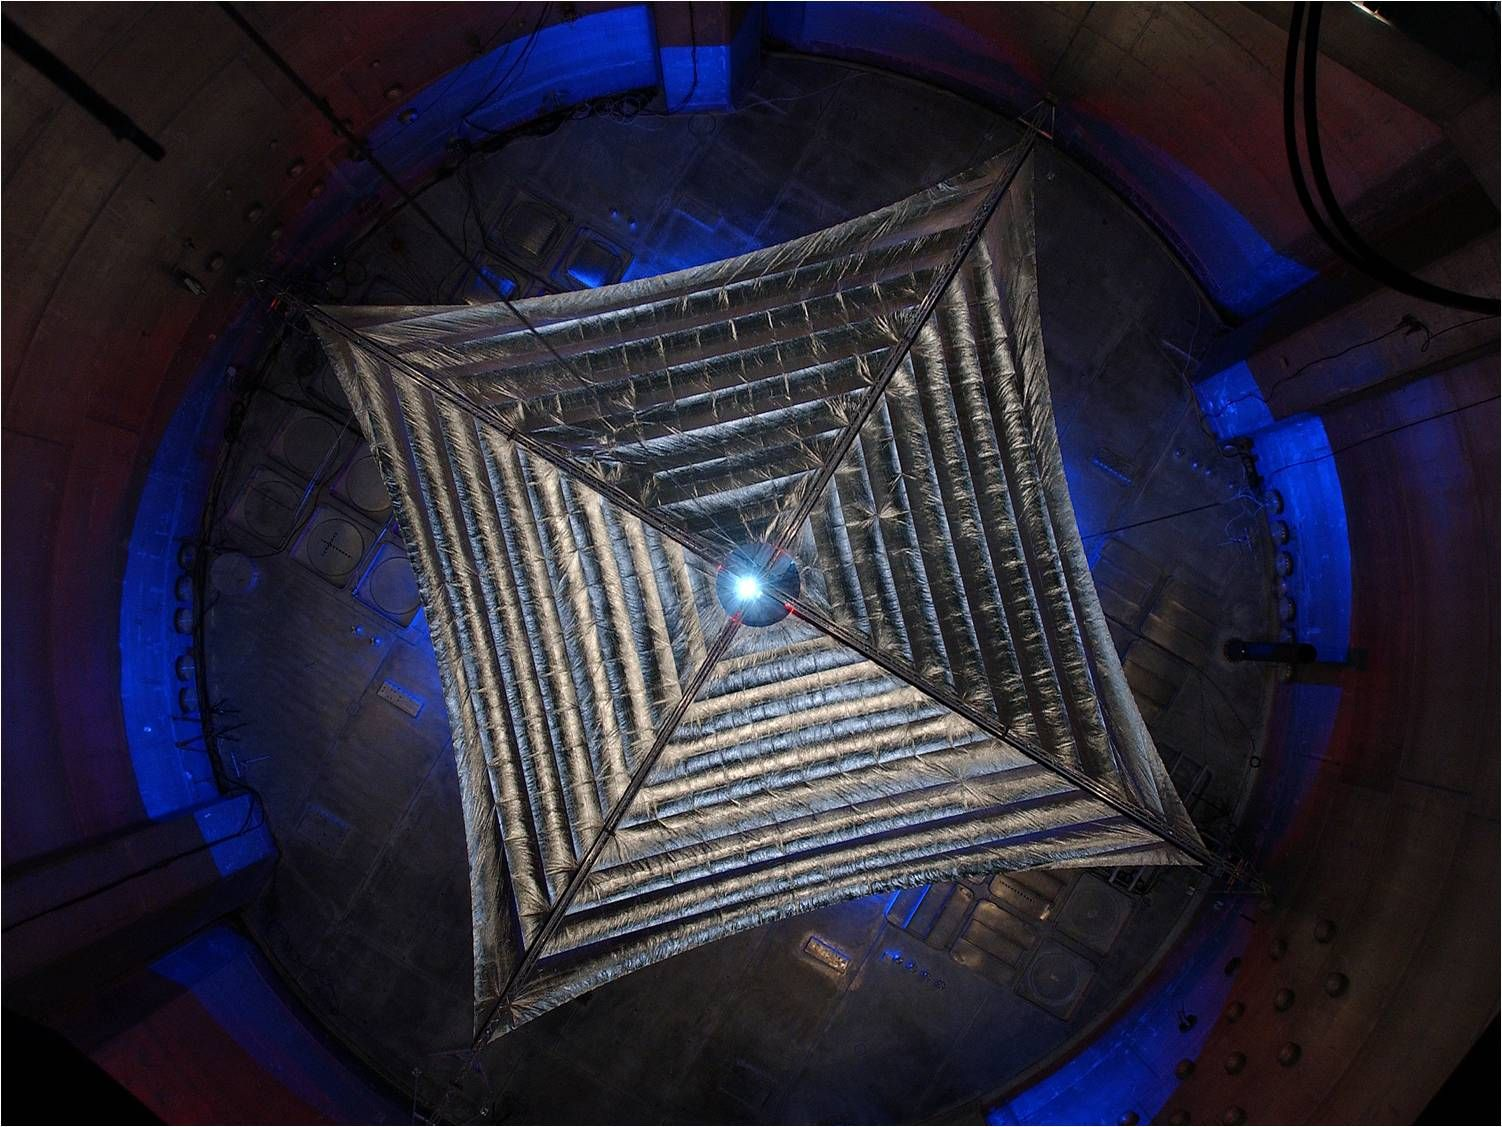 Are There Any Planned Missions Using Solar Sails?